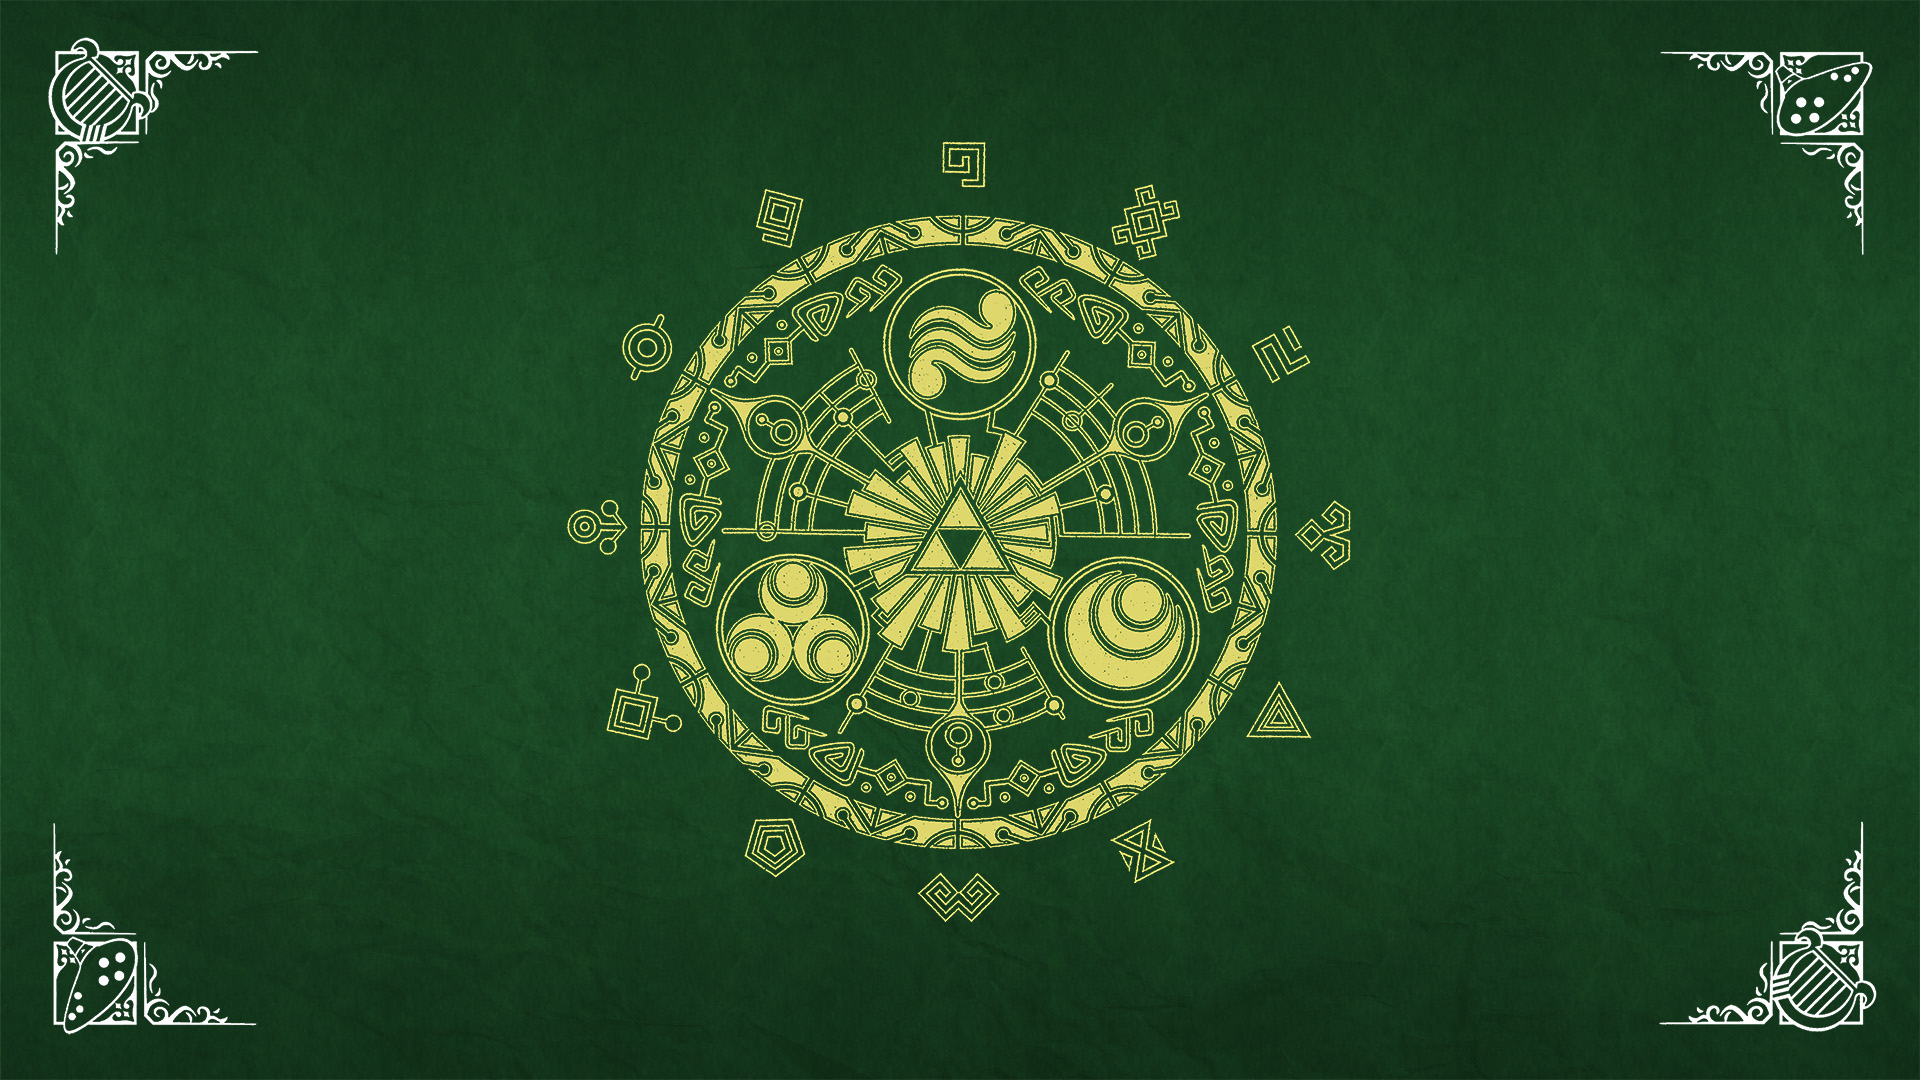 triforce wallpaper ipod